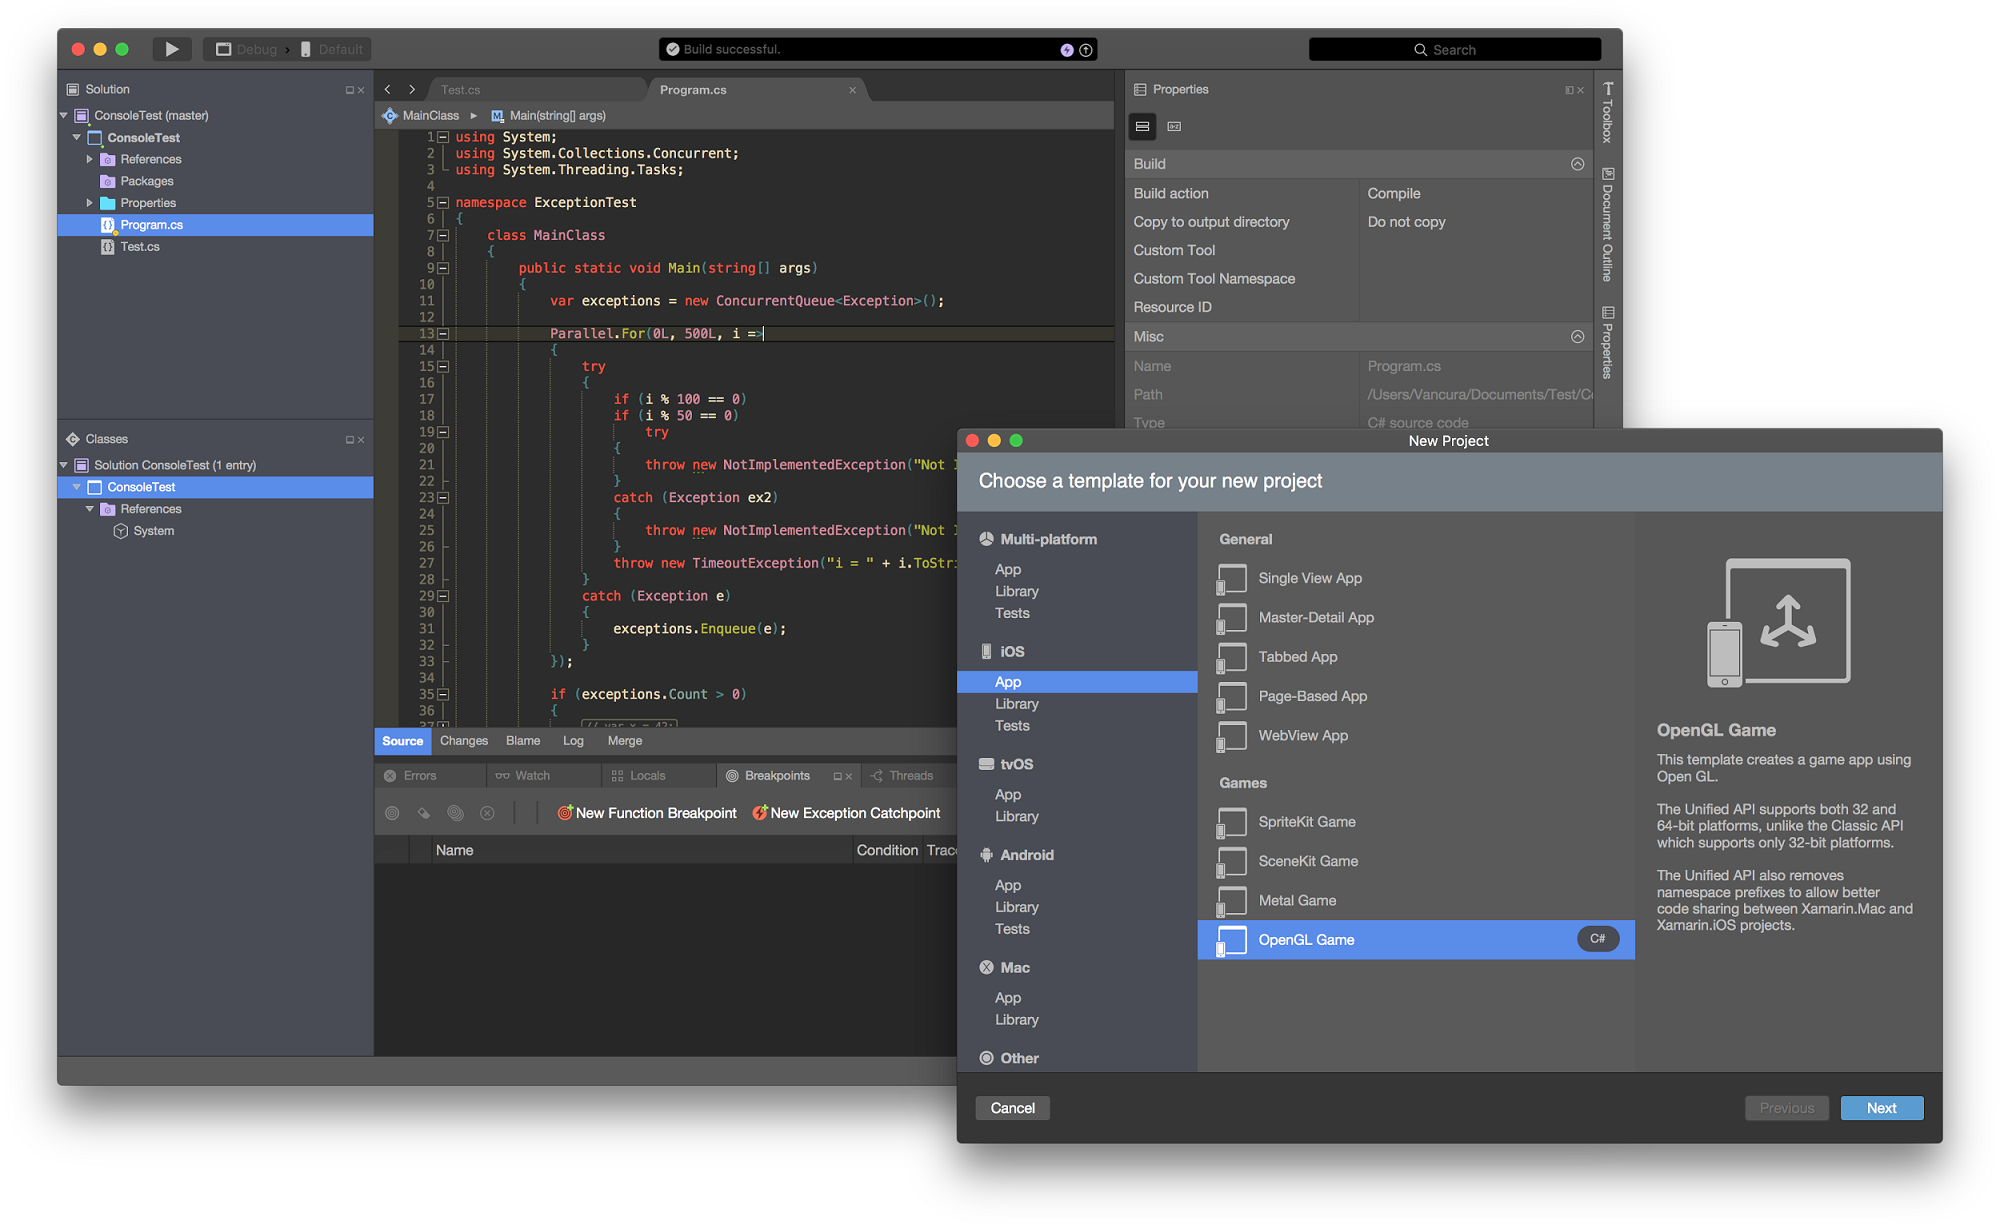 xamarin studio code templates - xamarin updates cross platform mobile app dev tools adtmag